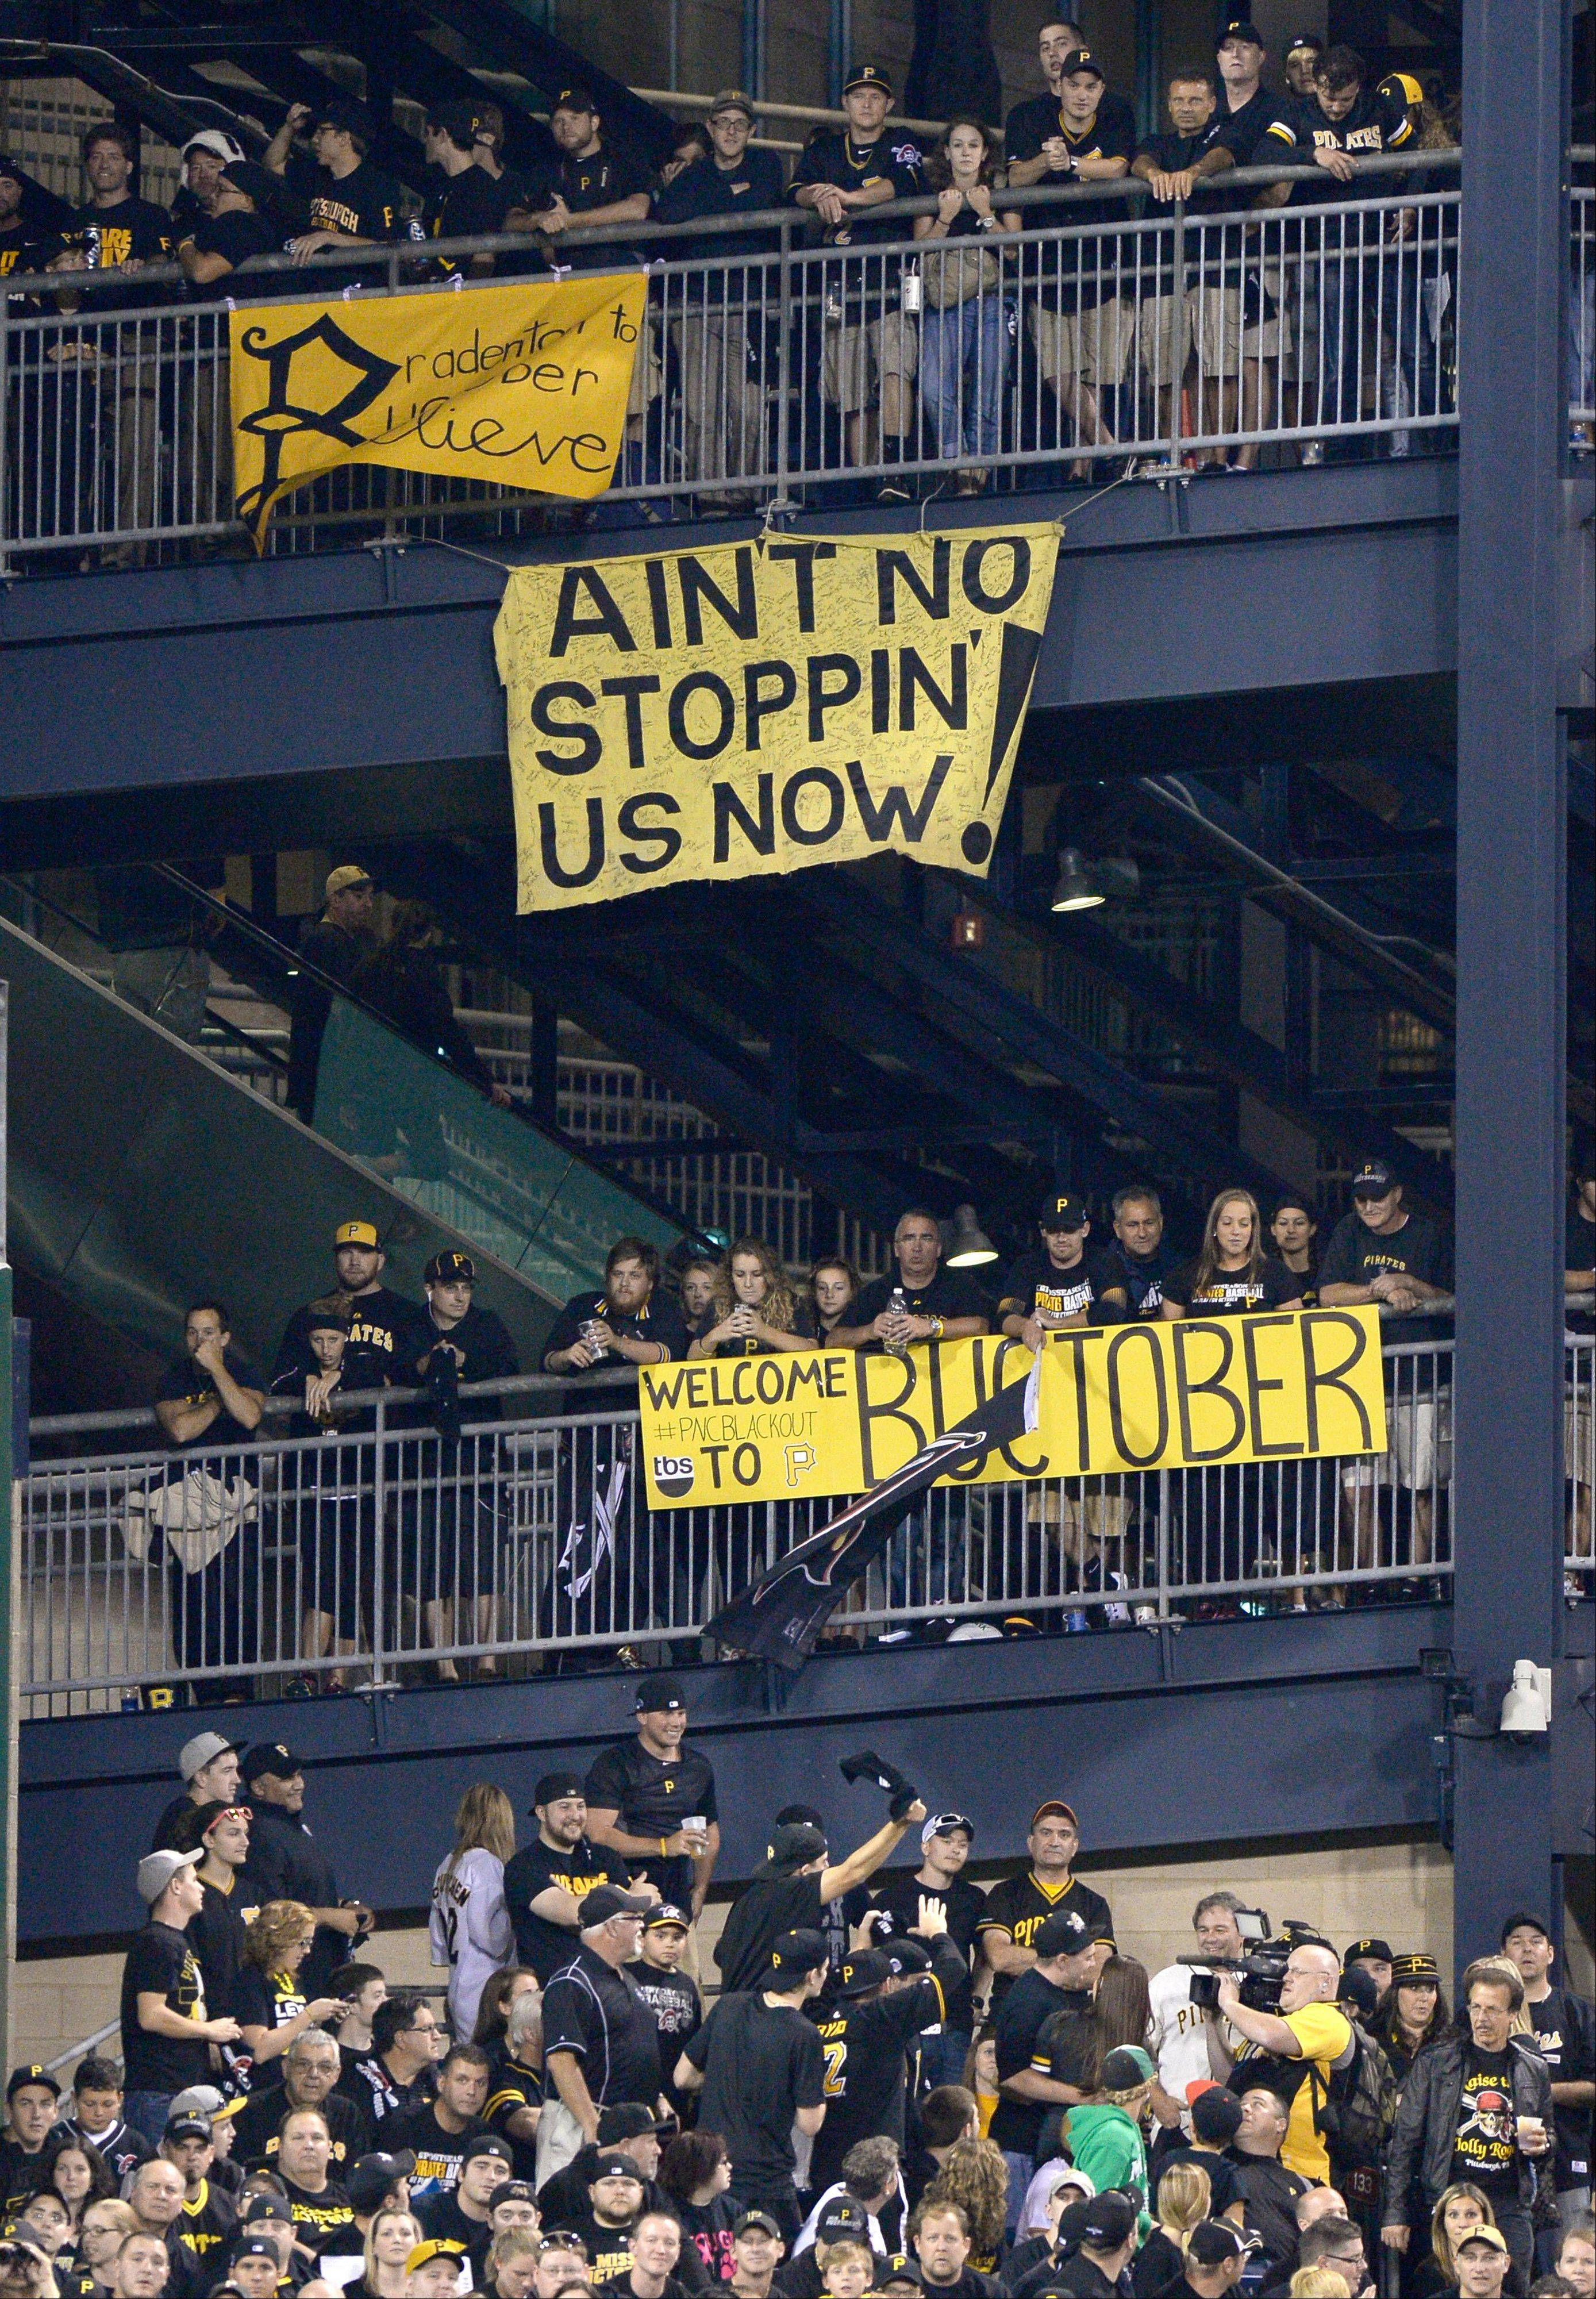 Banners supporting the Pittsburgh Pirates hang from the left field rotunda as the Pirates play the Cincinnati Reds in the NL wild-card playoff baseball game Tuesday, Oct. 1, 2013, in Pittsburgh.